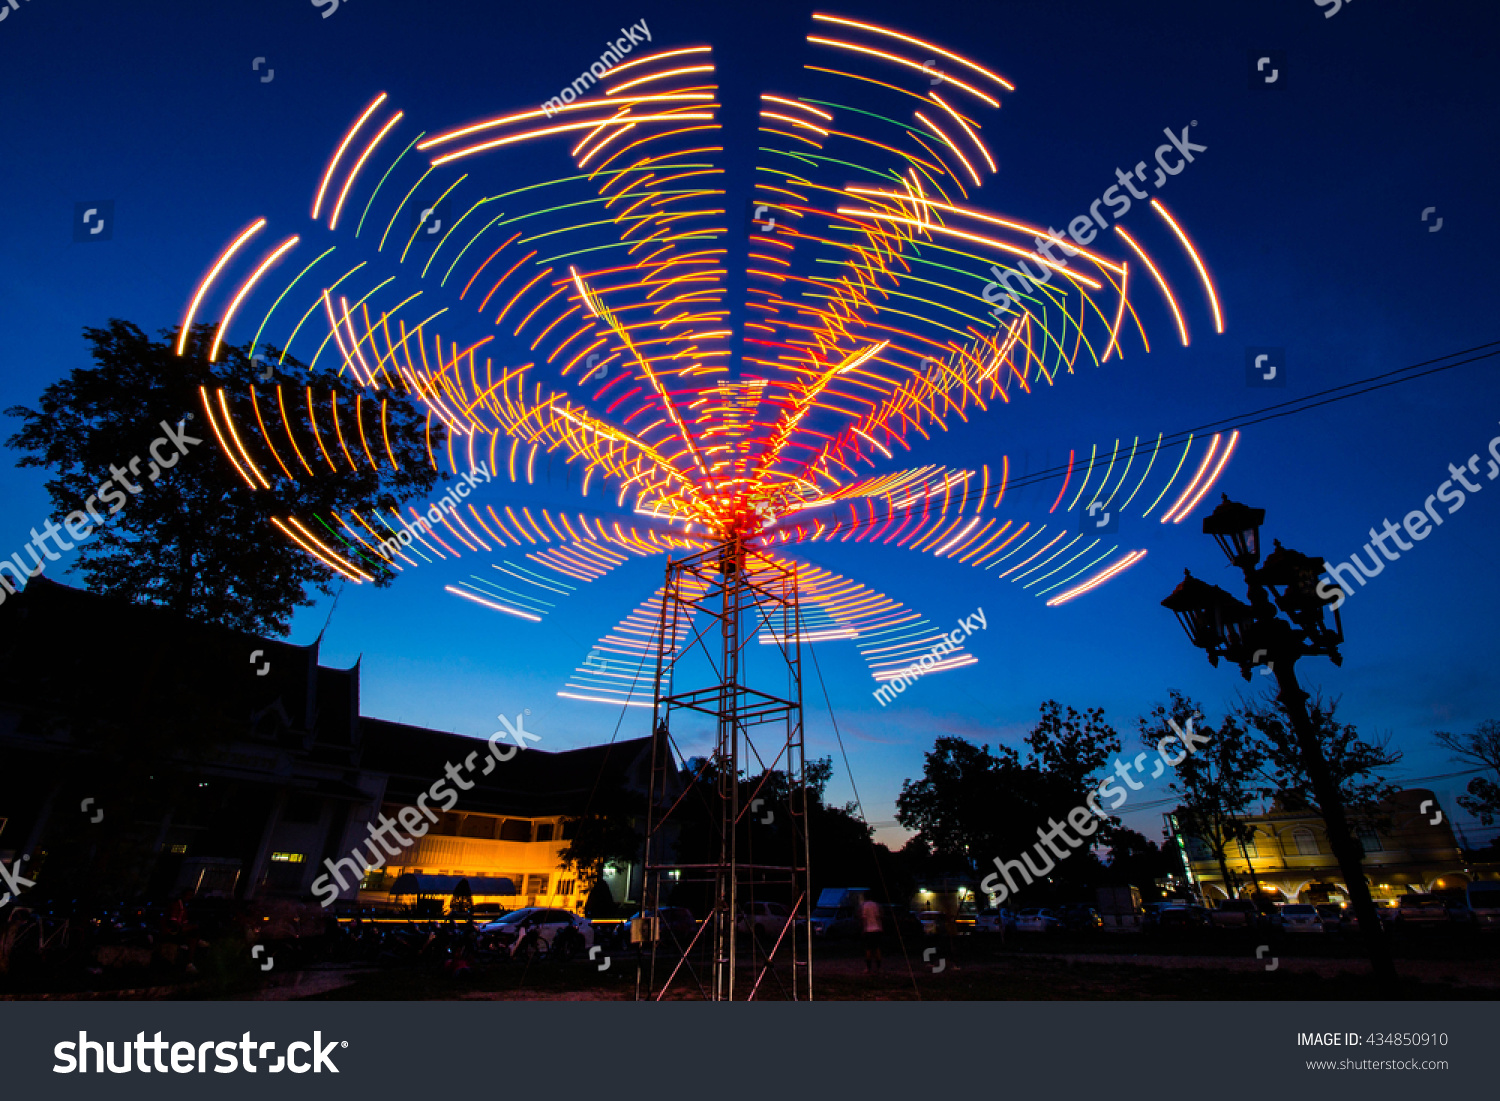 Holiday Lights In Abstract Slow Shutter >> Royalty Free Slow Light Speed Shutter Silhouette 434850910 Stock